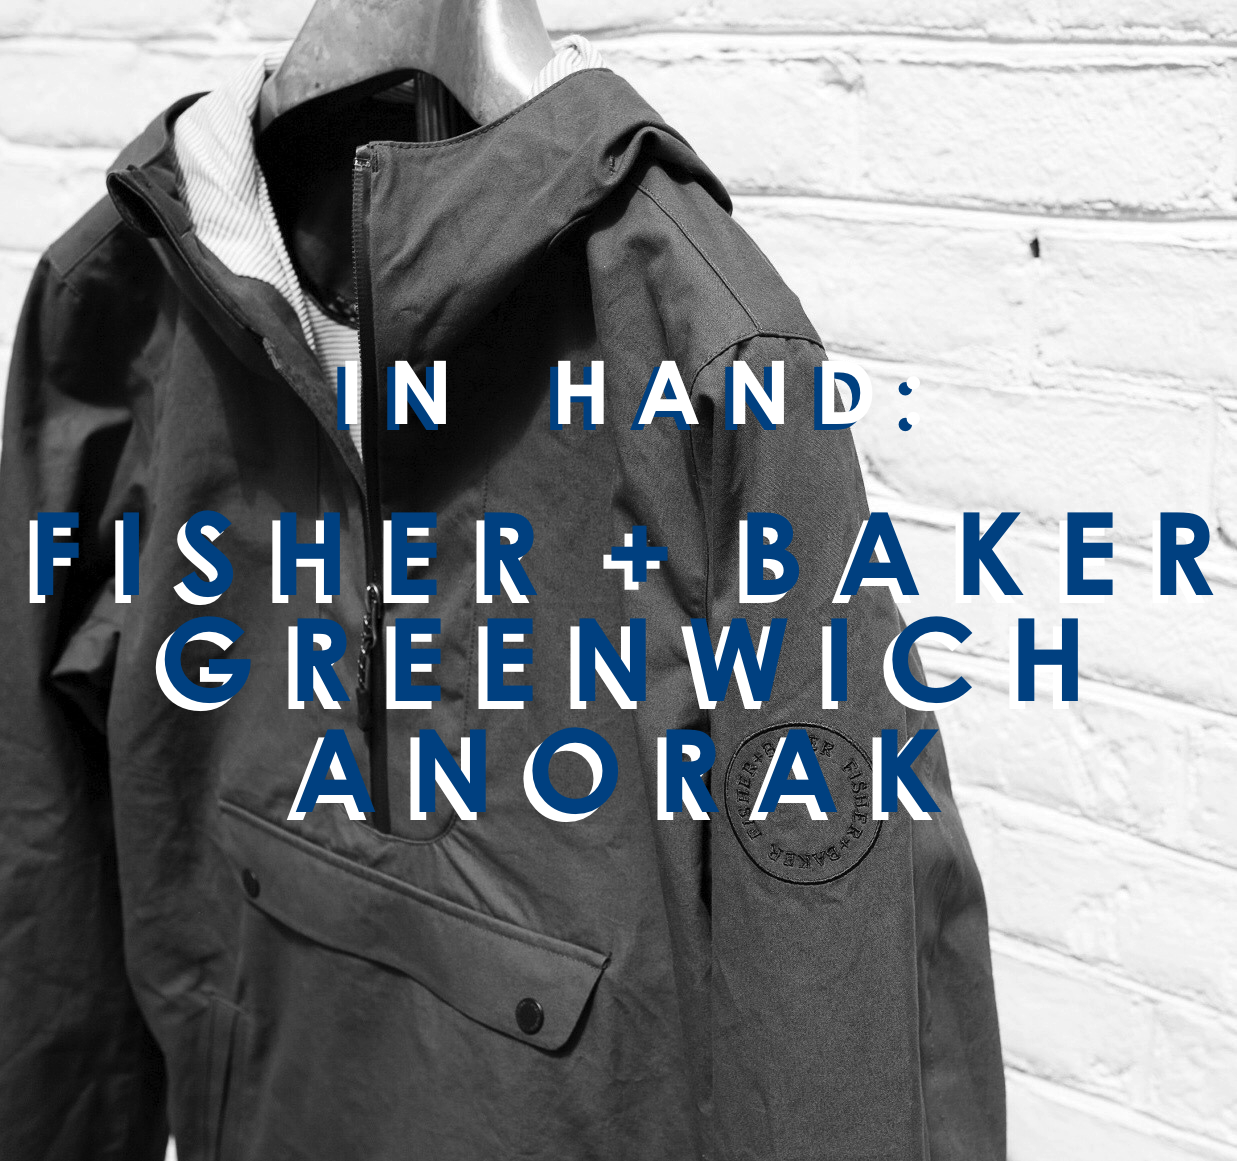 In Hand: The Fisher + Baker Greenwich Anorak